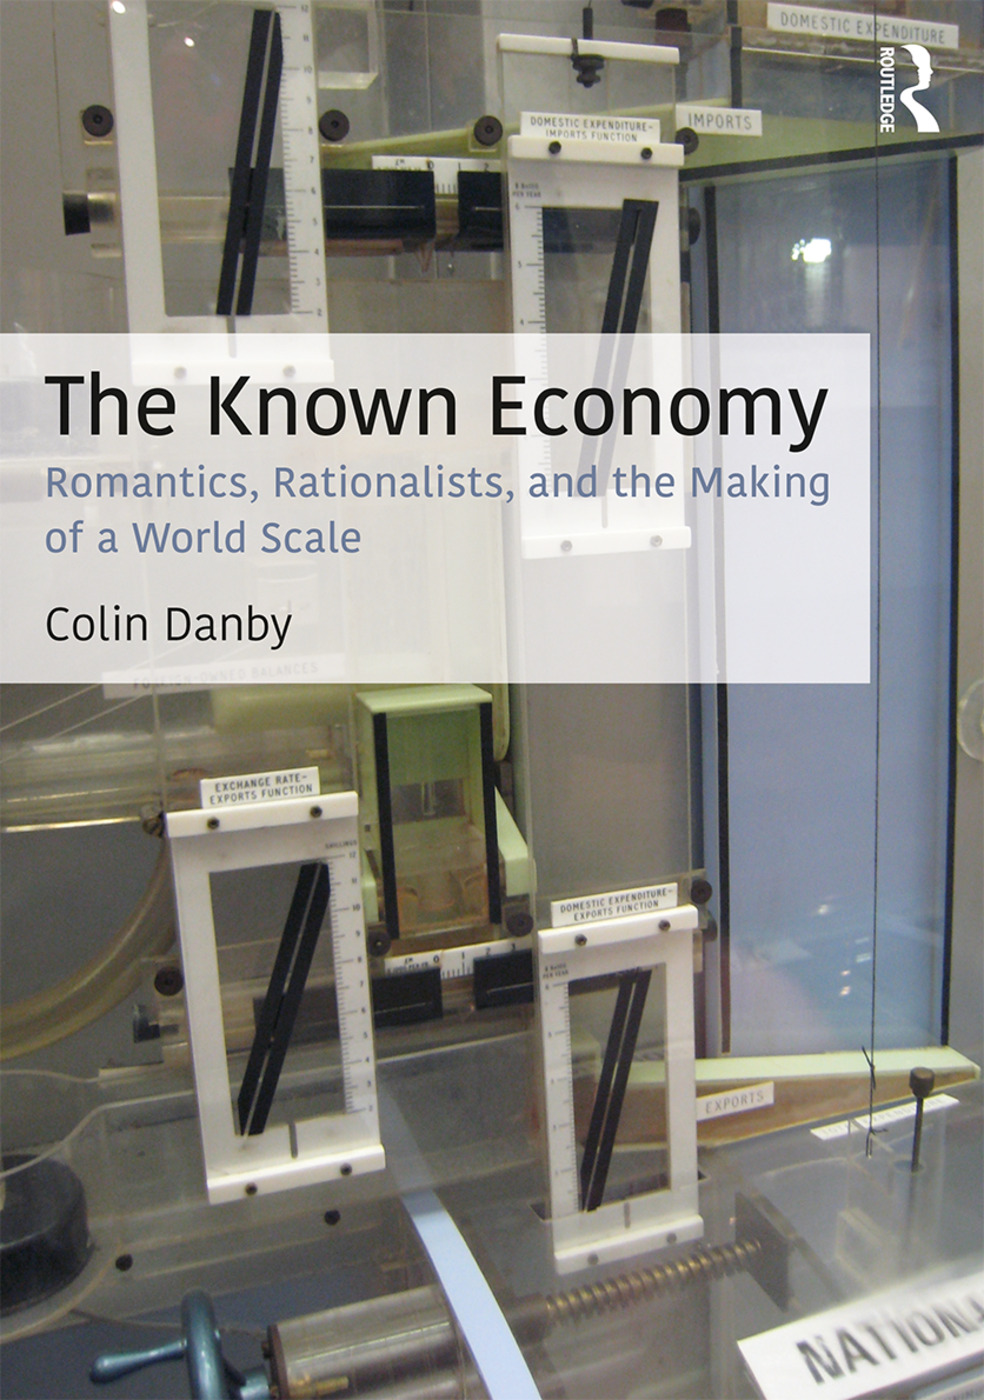 The Known Economy: Romantics, Rationalists, and the Making of a World Scale book cover